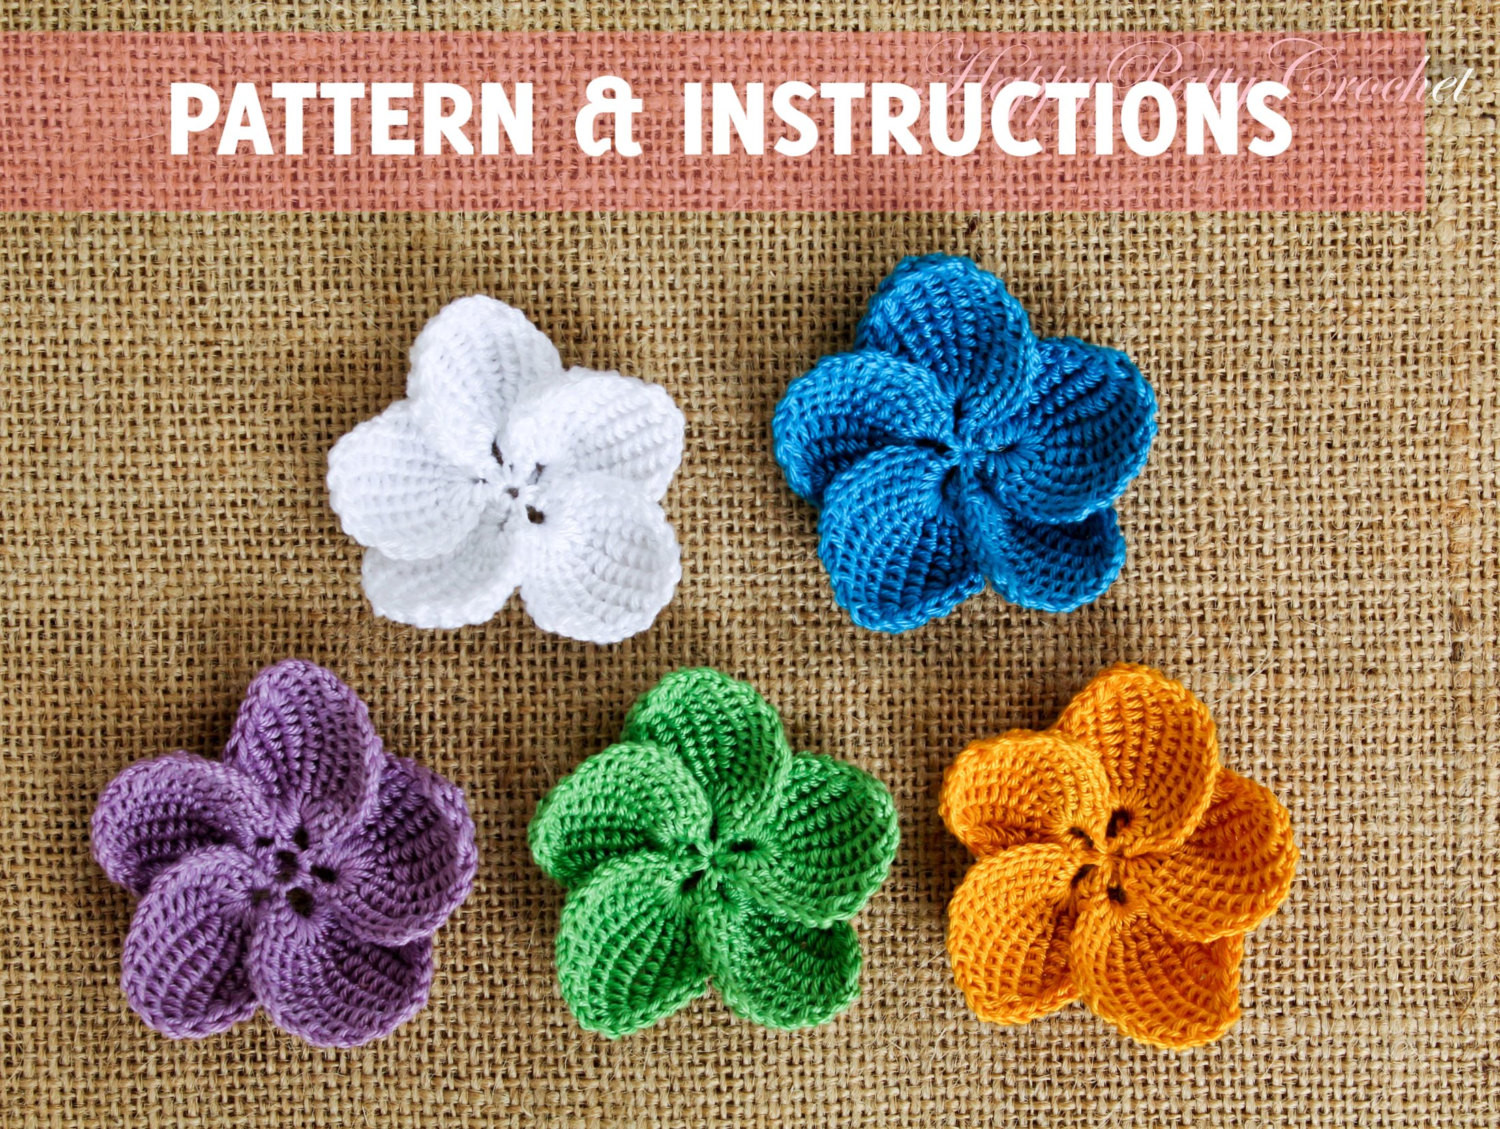 Free Crochet Flower Patterns Fresh Crochet Flowers Videos Crochet and Knit Of Amazing 42 Images Free Crochet Flower Patterns